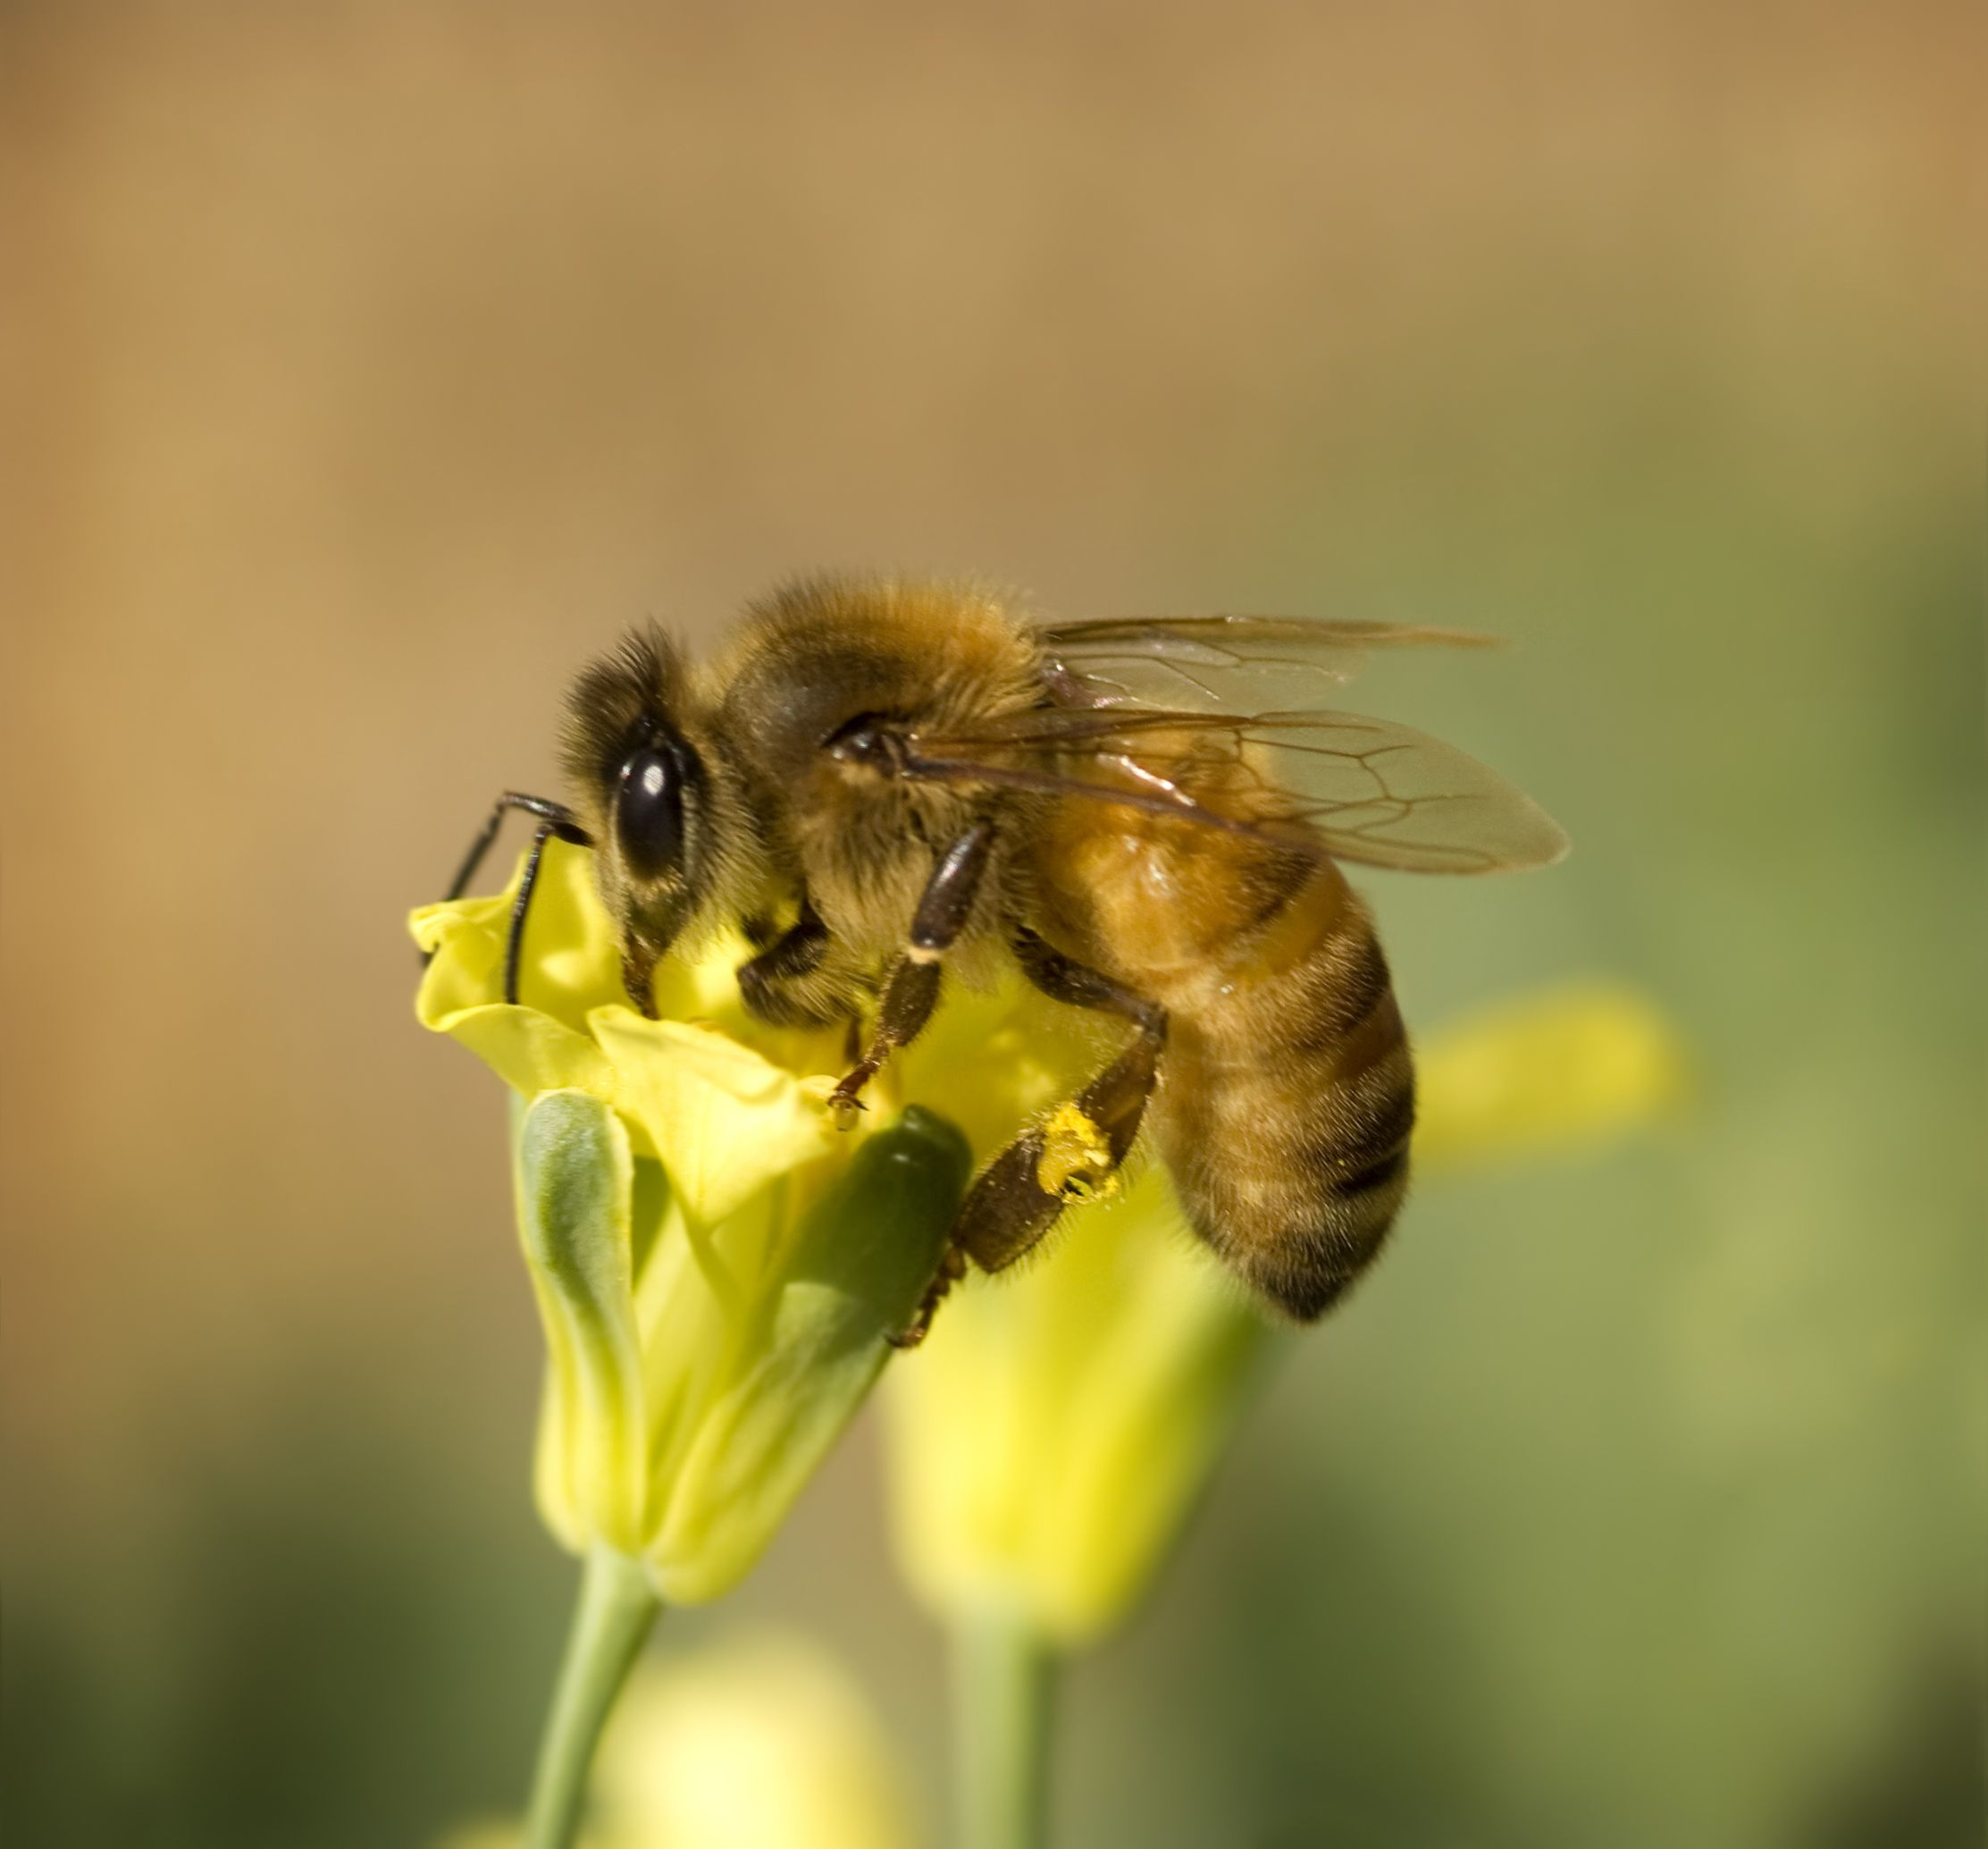 An Africanized honeybee on a flower